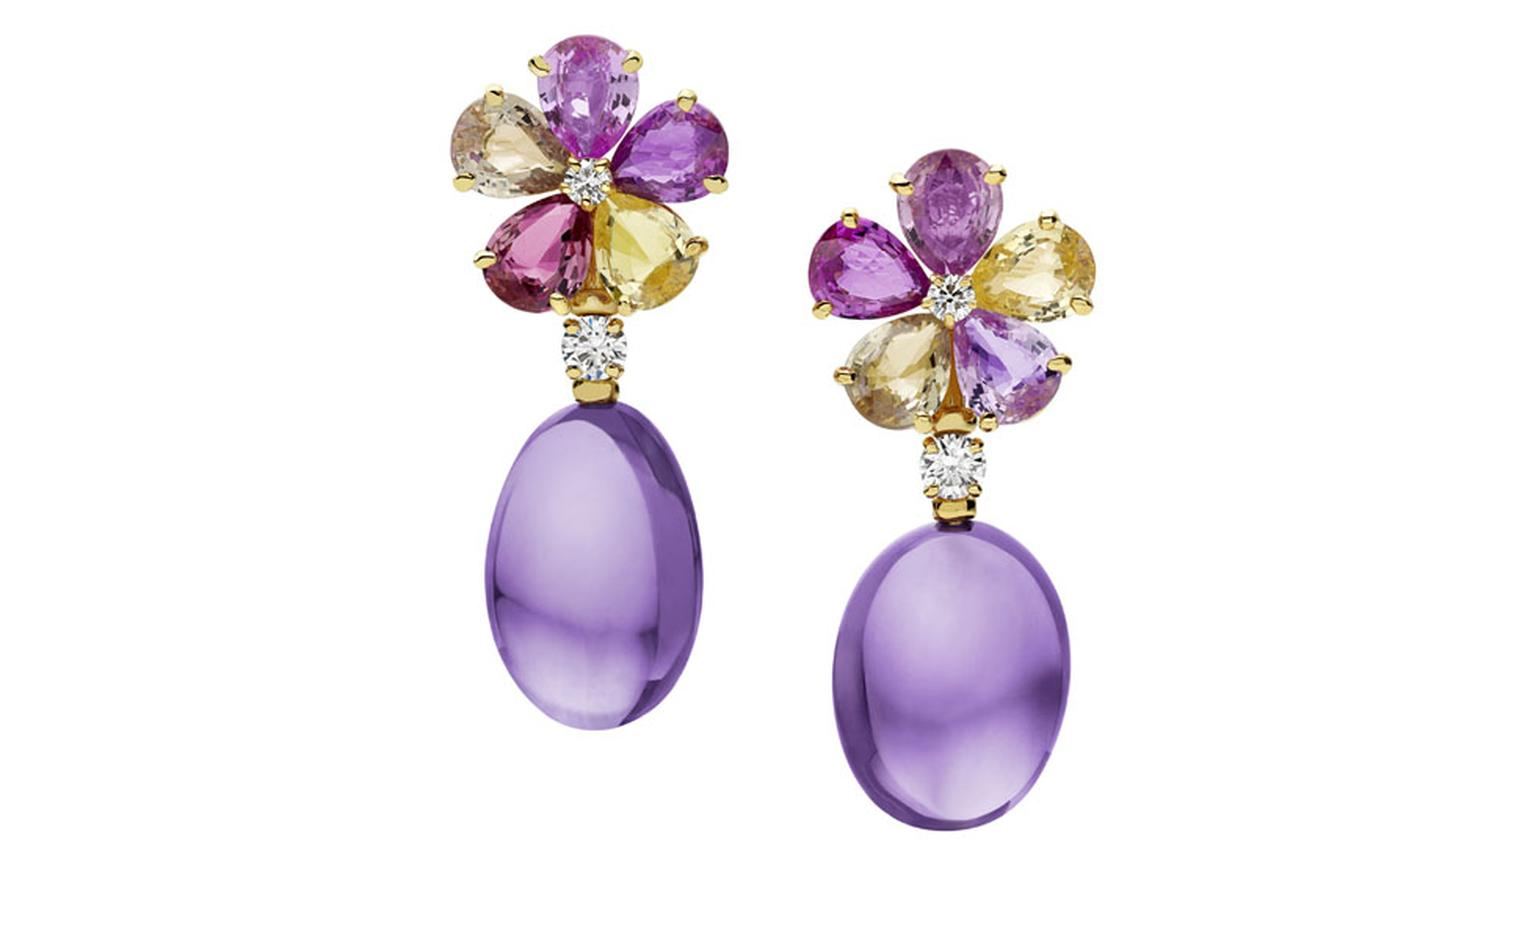 Bulgari.  Mediterranean Eden yellow gold earrings mounting fancy sapphires, amethysts, diamonds and pavé diamonds. Price from £16.700,00